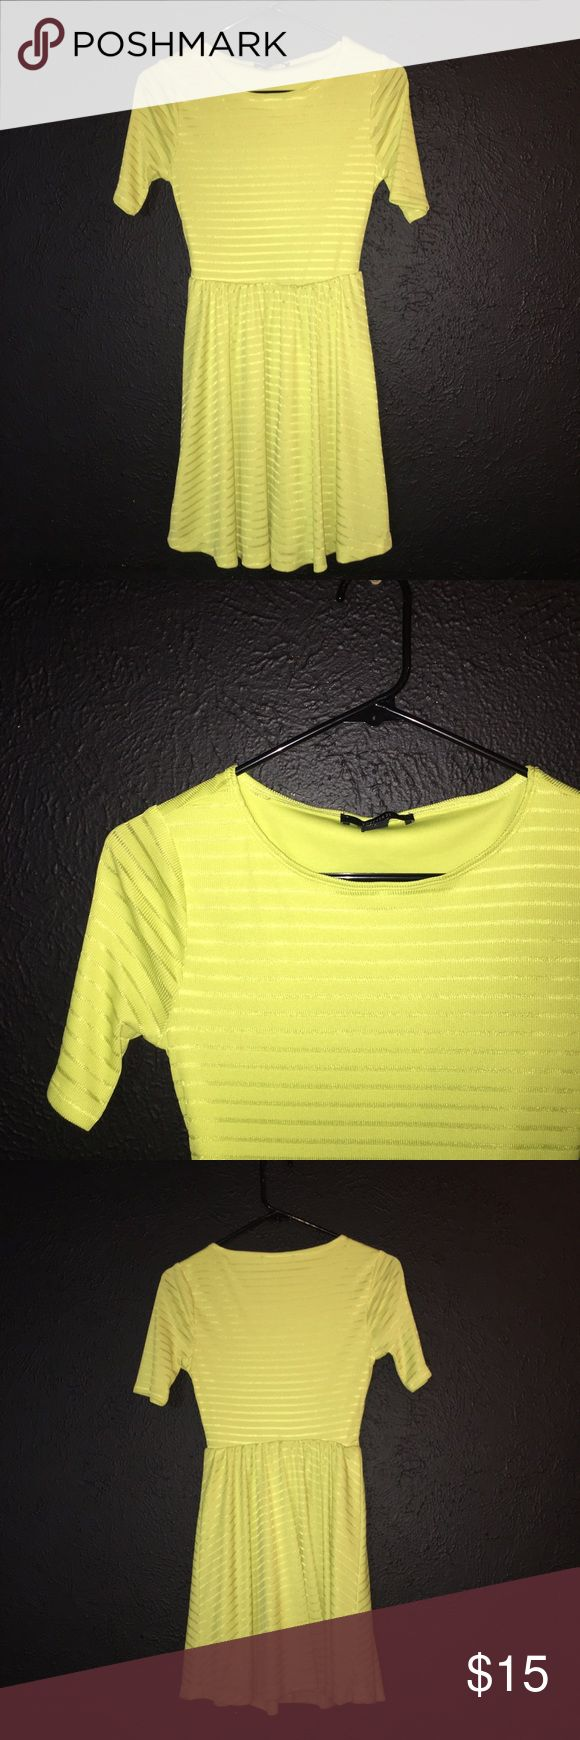 Neon Yellow Dress Neon yellow dress with cool stripey design (I don't know how to describe it haha). But it's 3% spandex so it's got a little bit of that stretchy feel to it. Really cute for spring/summertime. Worn once. Forever 21 Dresses Mini